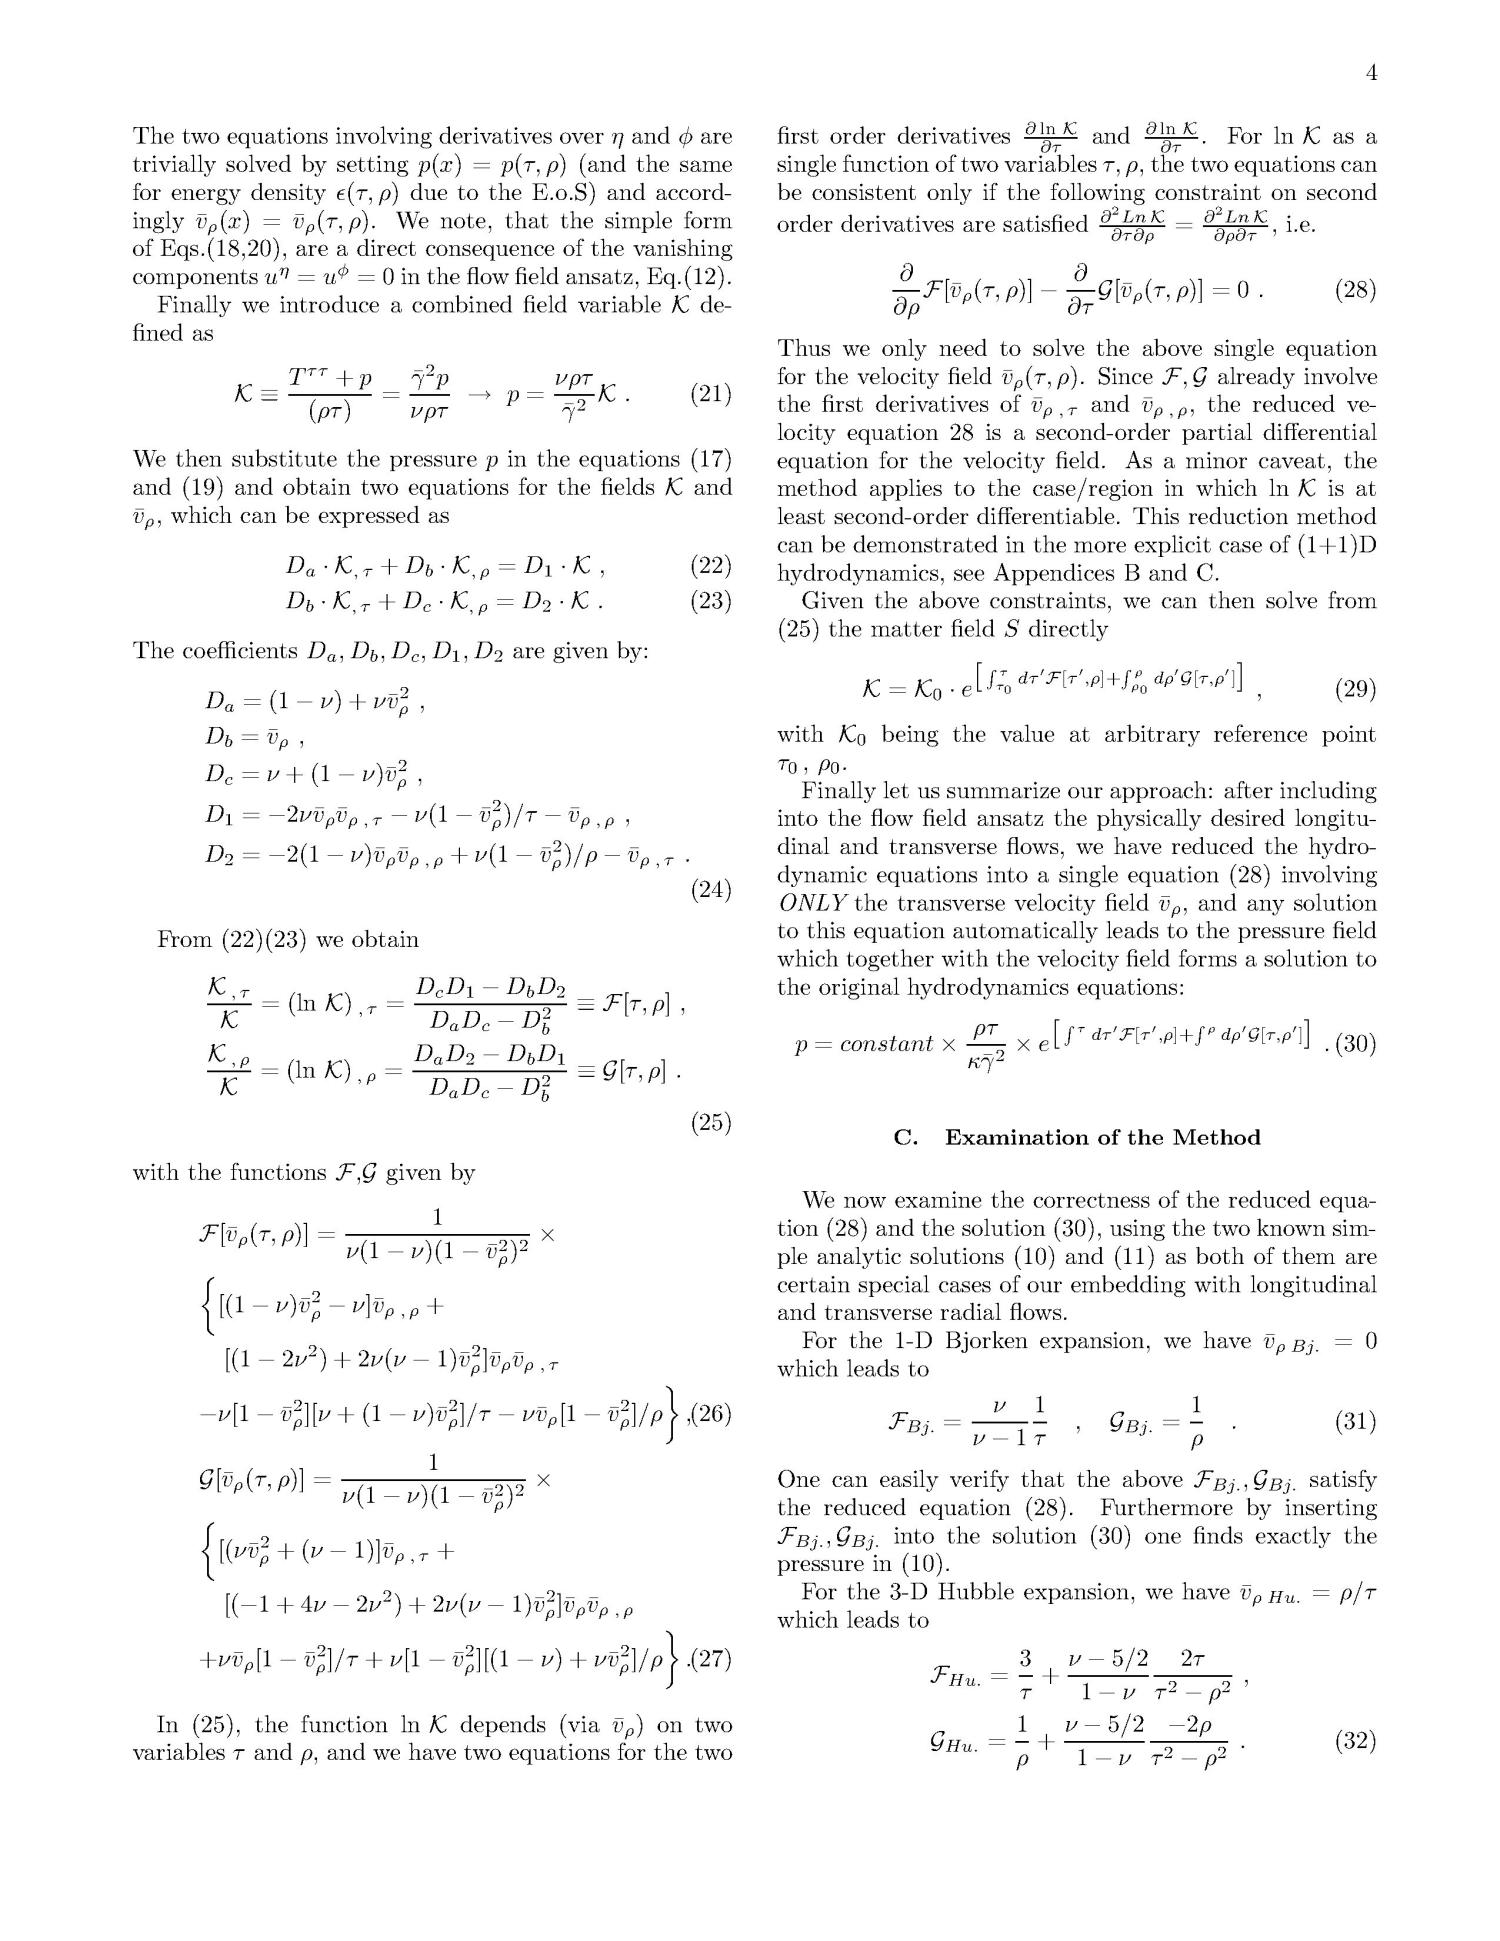 Exact Relativistic Ideal Hydrodynamical Solutions in (1+3)D with Longitudinal and Transverse Flows                                                                                                      [Sequence #]: 4 of 9